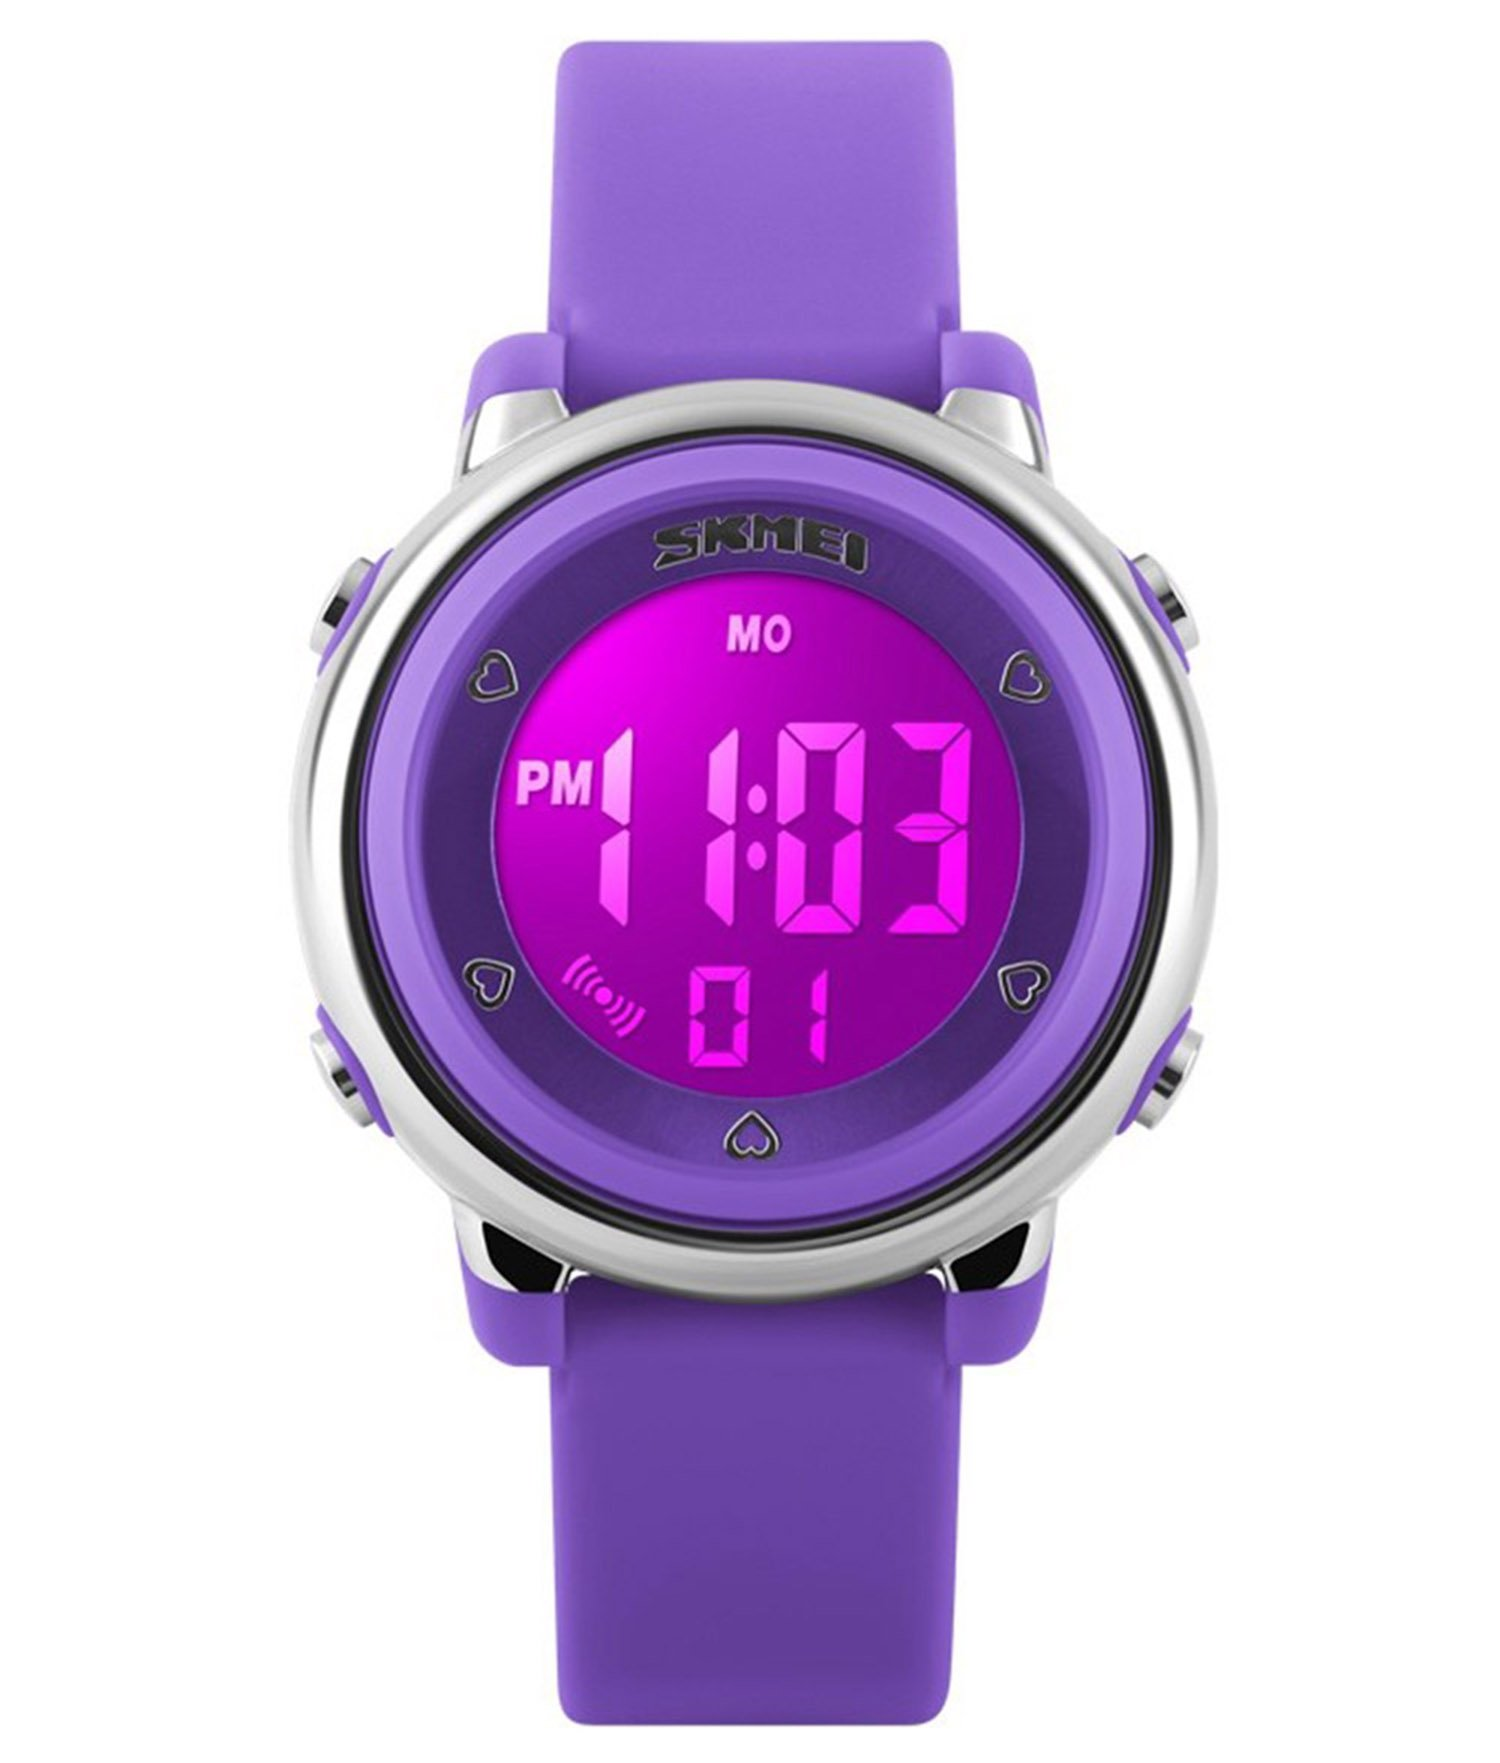 Fanmis Children Digital Display Purple Silicone Band LED Screen Waterproof Quartz Watch by Fanmis